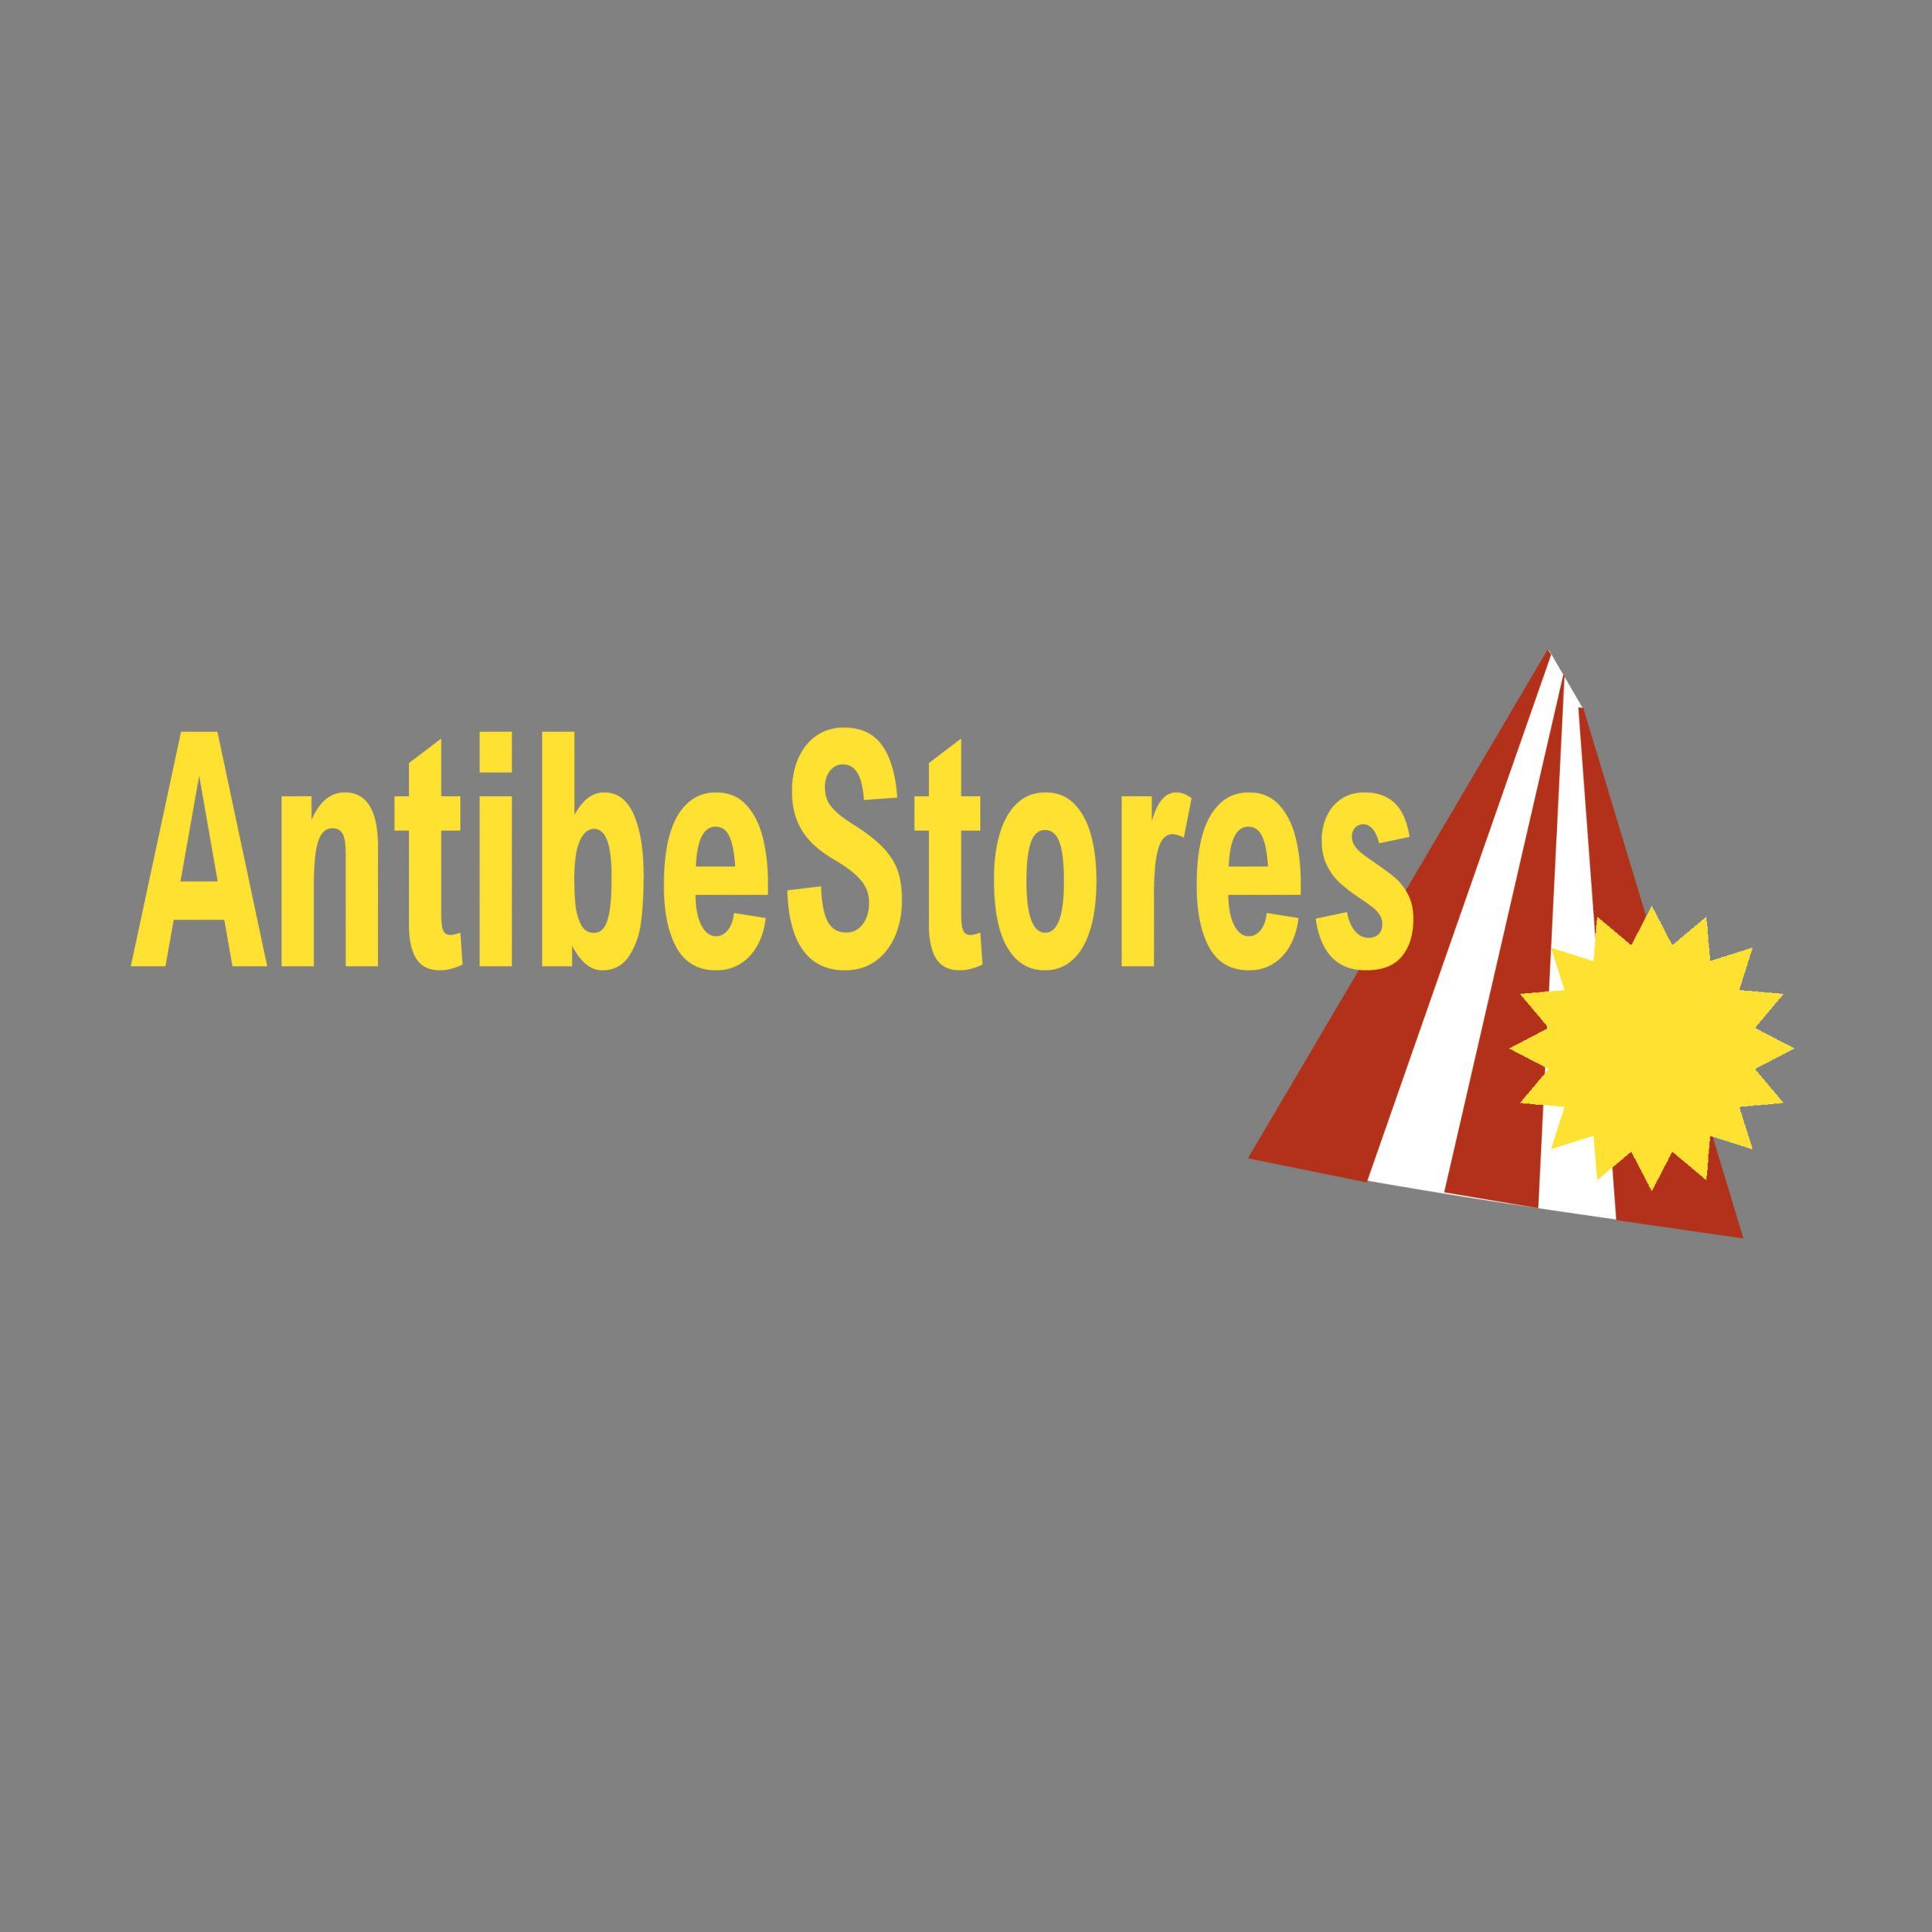 https://www.asfontonne-antibes.com/wp-content/uploads/2020/02/Antibes-Stores-scaled.jpg